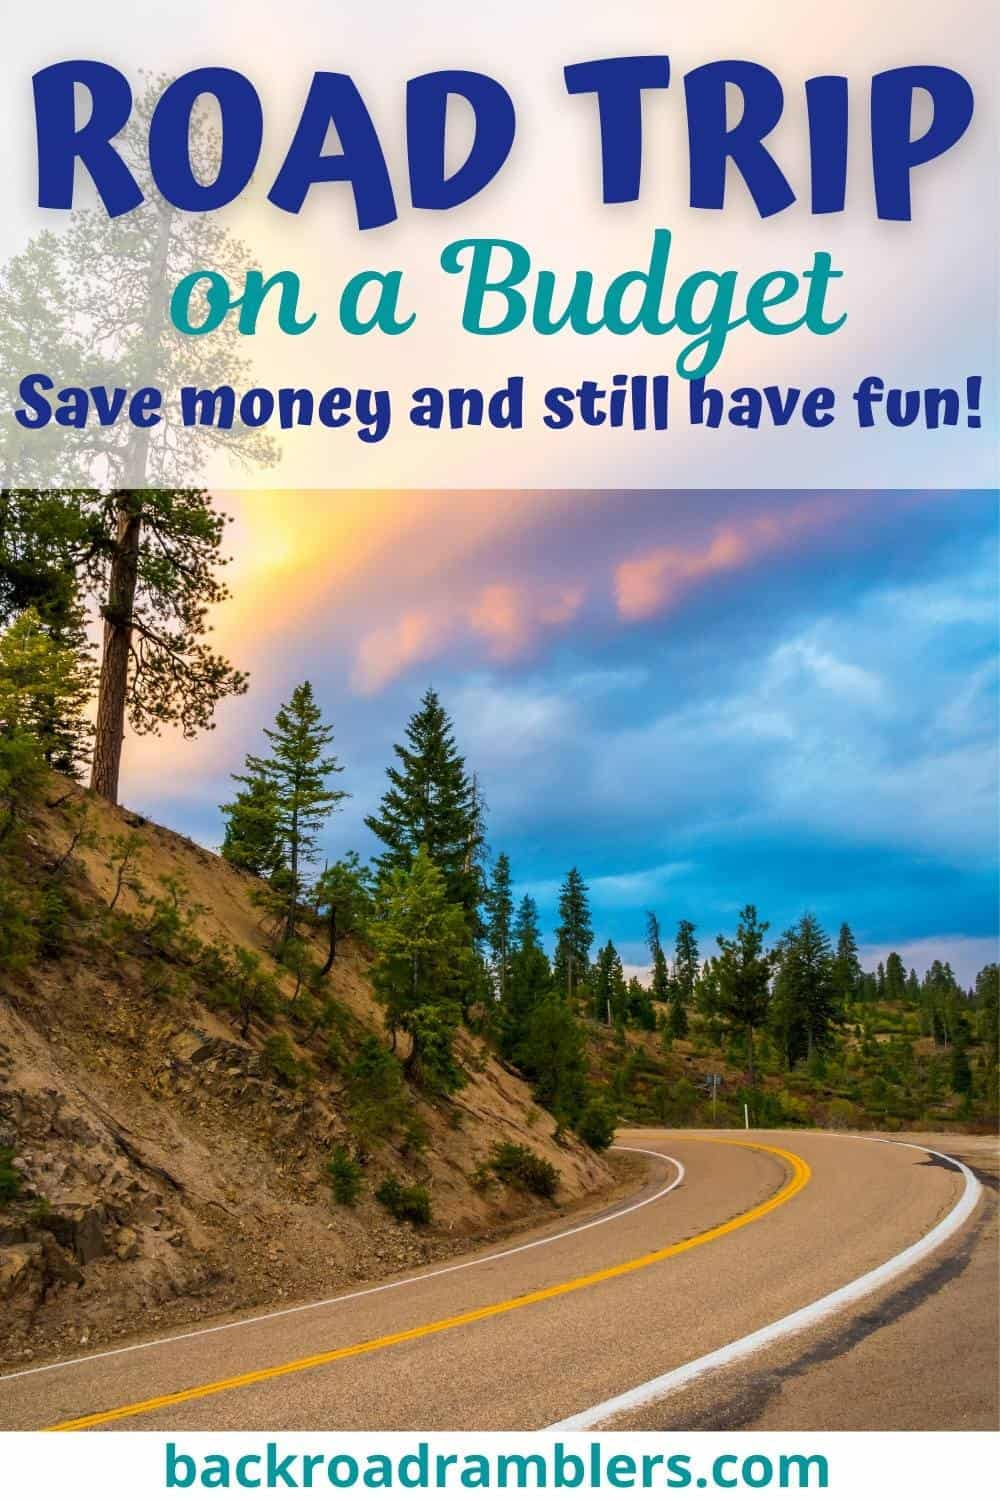 A photo of a winding road through the countryside. Text overlay: Road trip on a budget. Save money and still have fun!